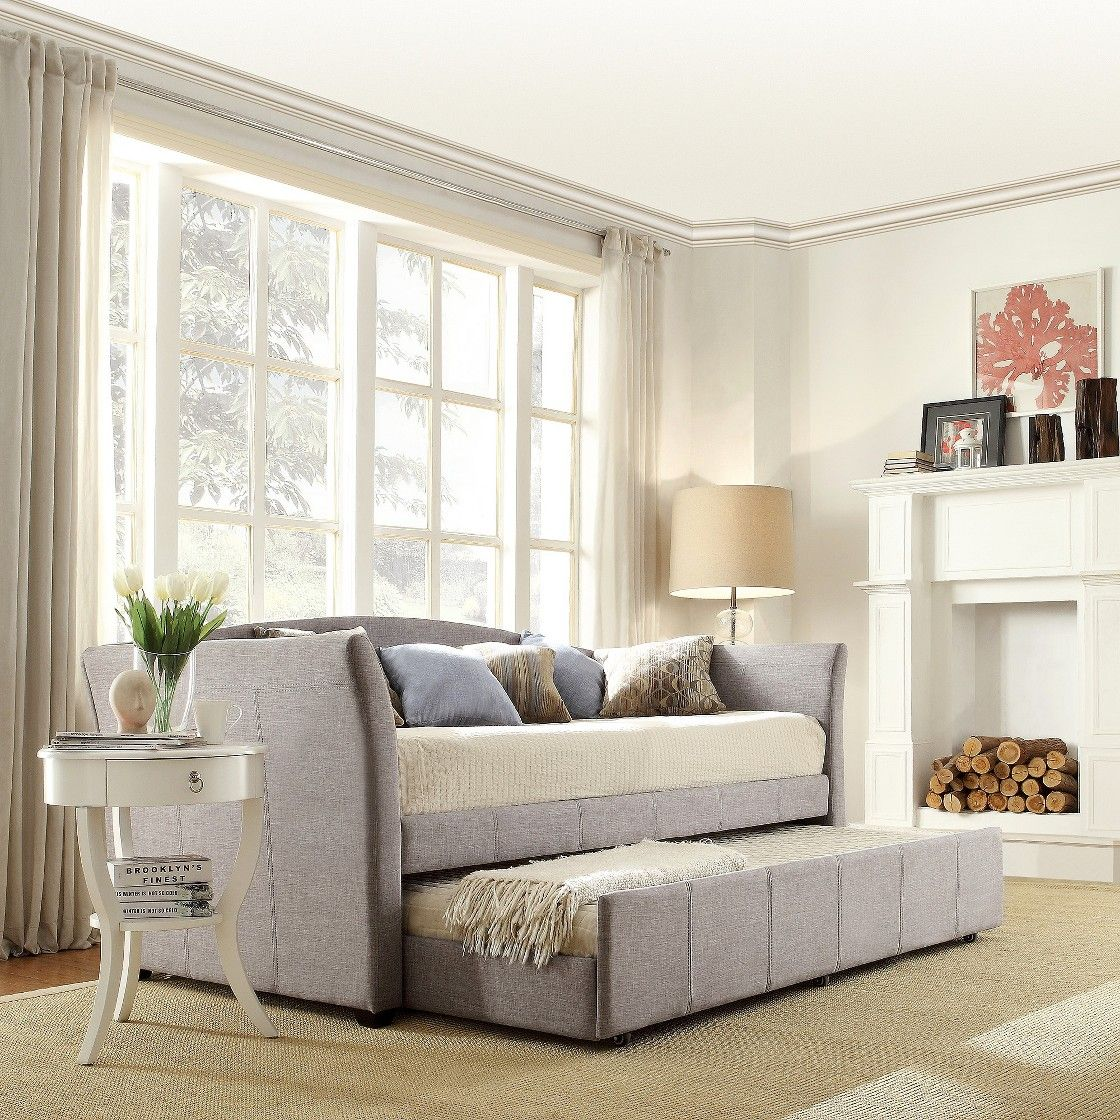 Paige Linen Daybed with Pullout Trundle - Inspire Q. Guest Room ...